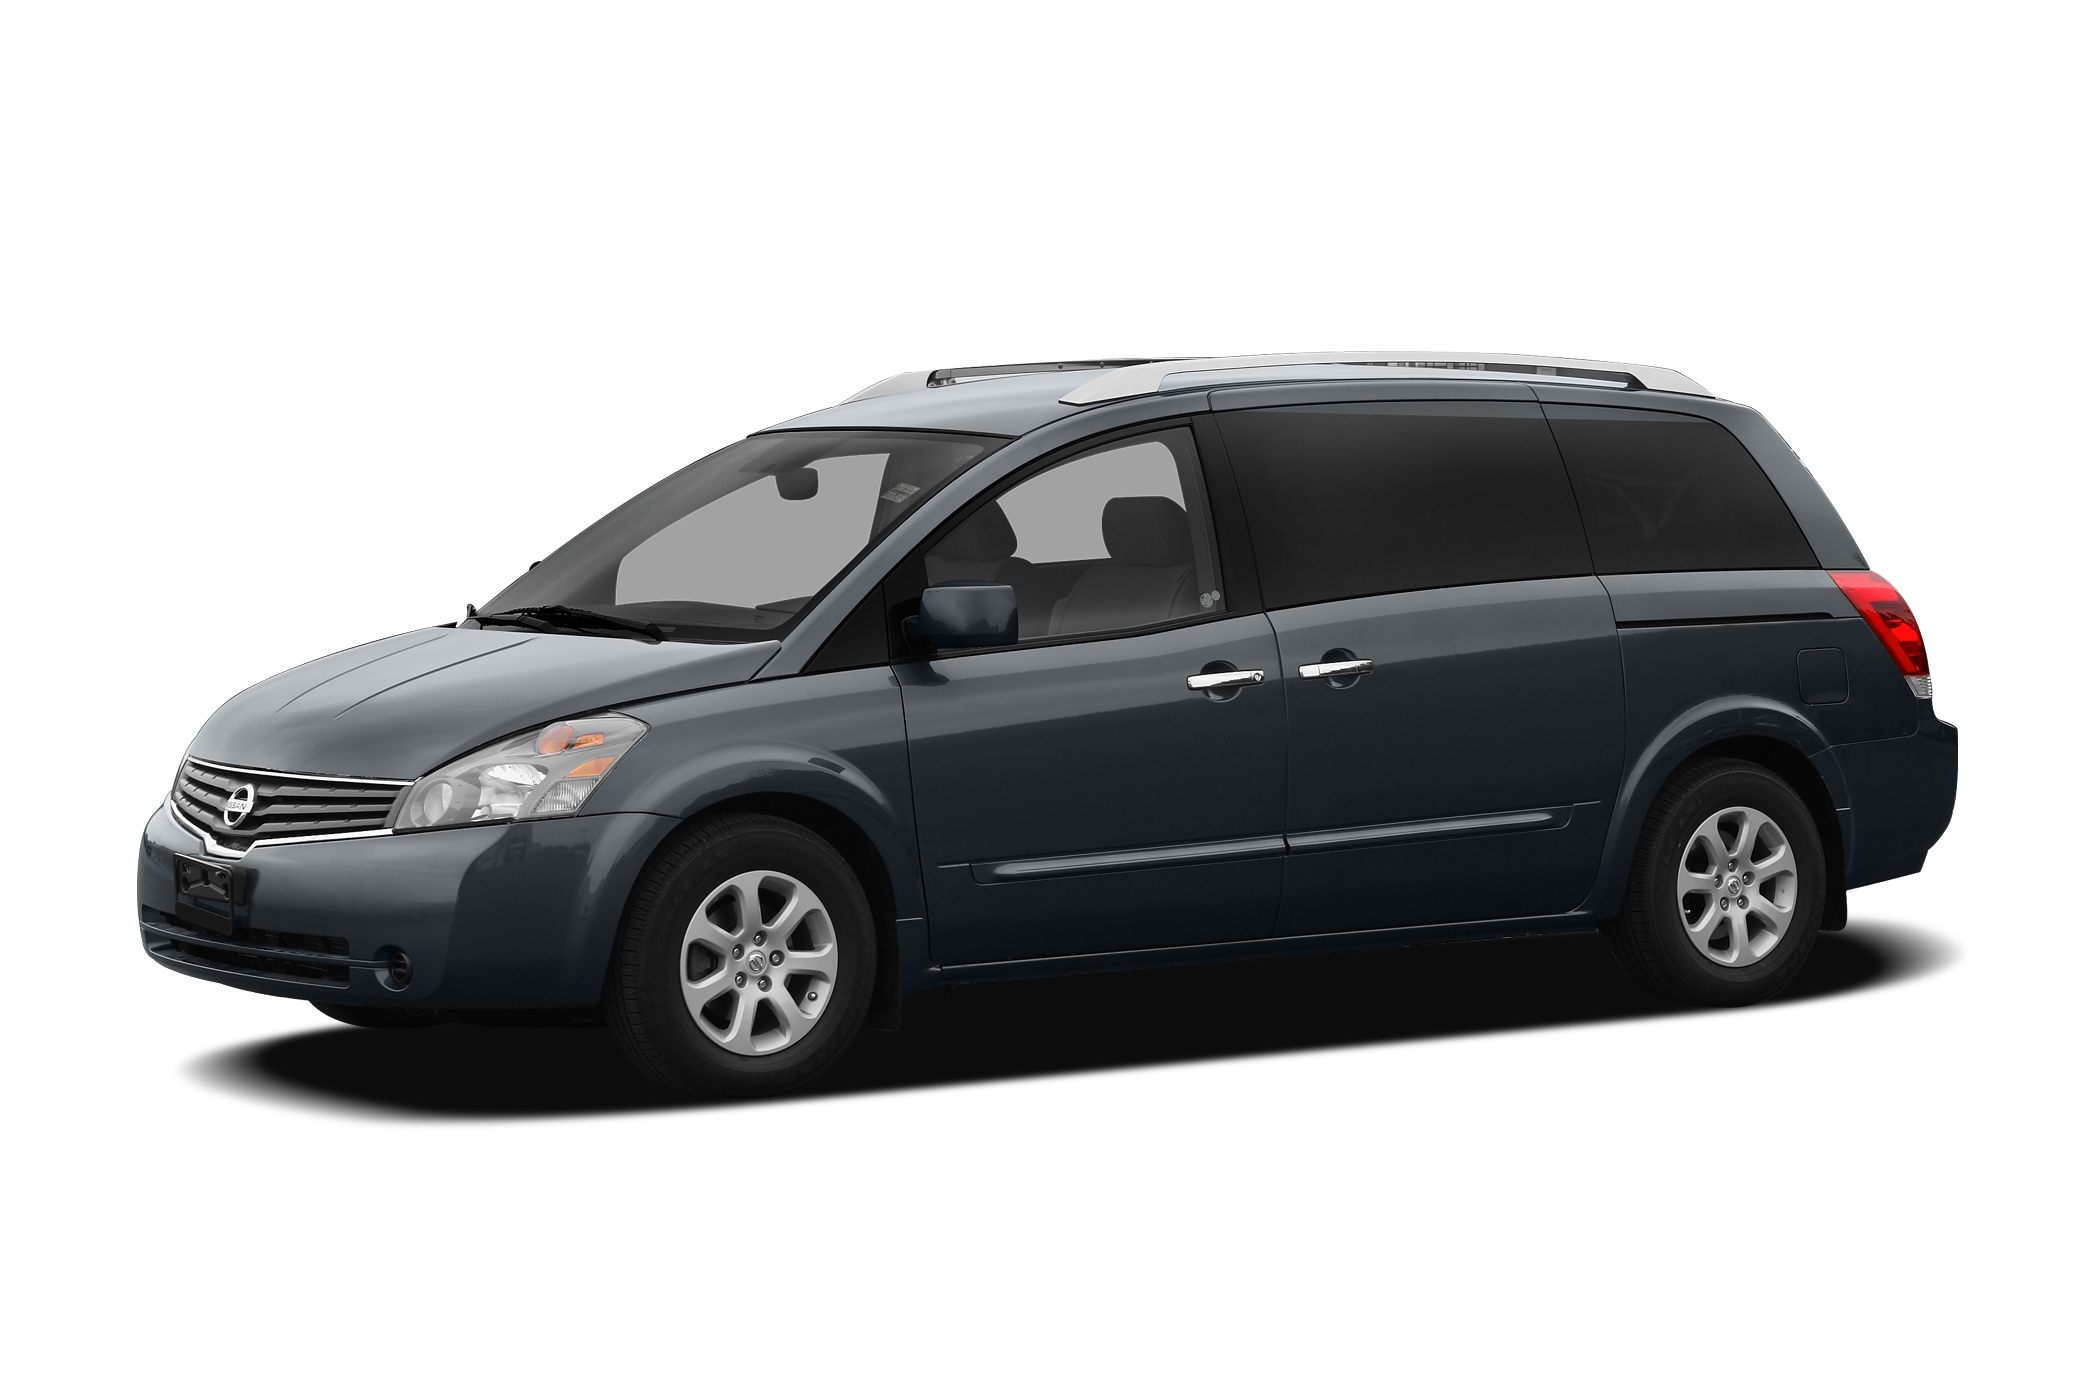 2007 Nissan Quest 35 SL THIS VEHICLE COMES WITH OUR BEST PRICE GUARANTEE FIND A BETTER ON A SIM